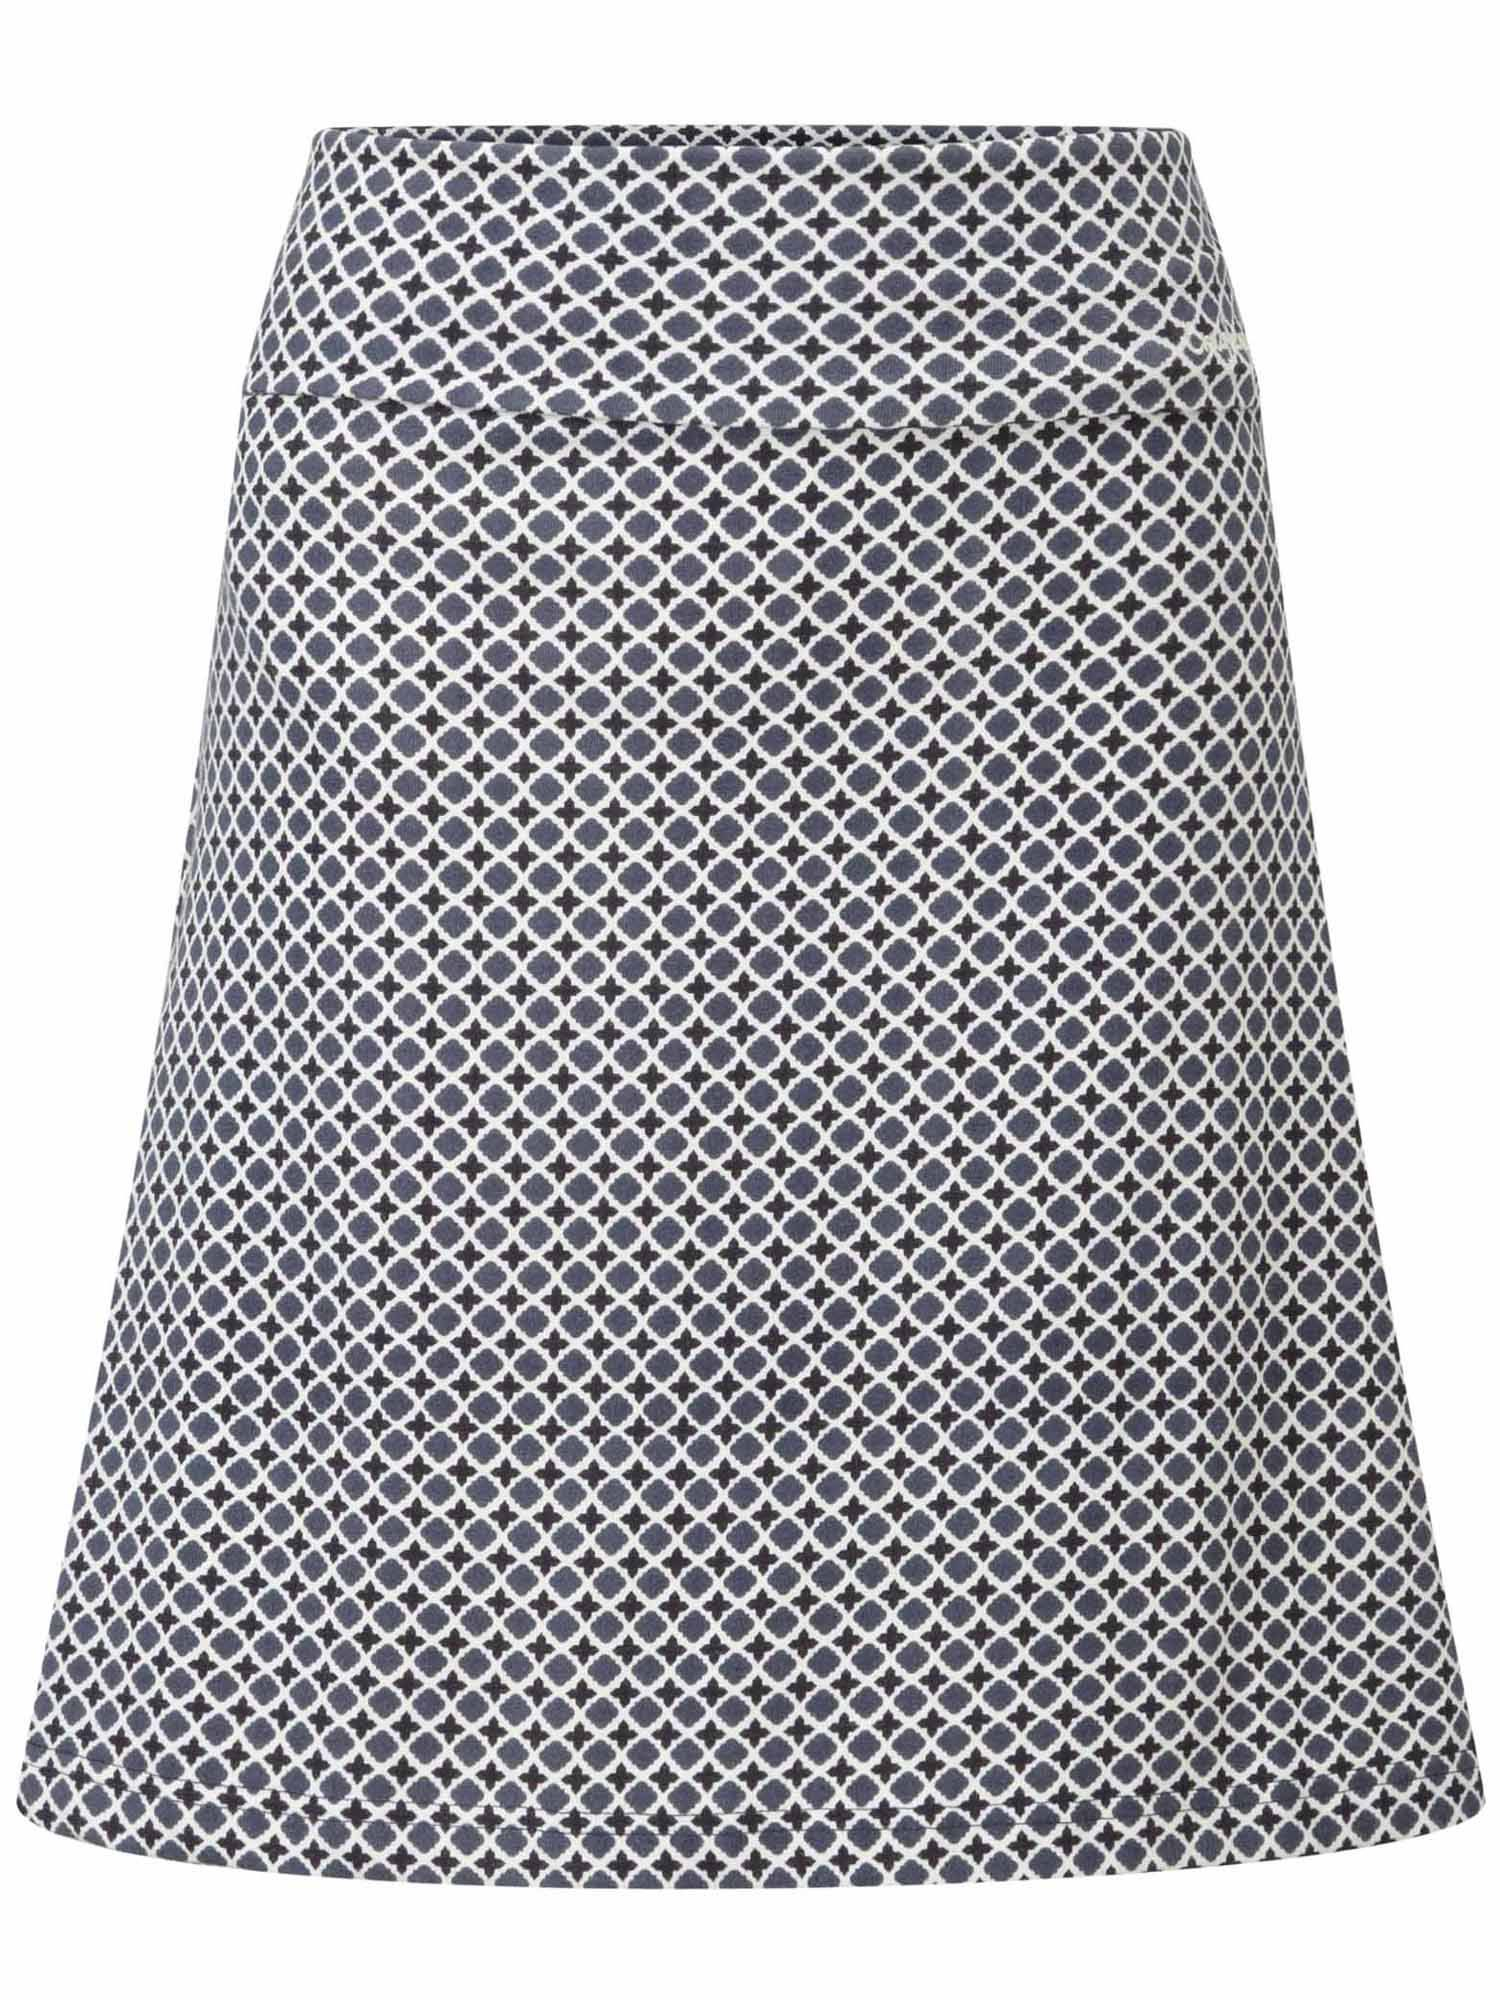 Craghoppers Craghoppers NosiLife Bailly Skirt, Navy